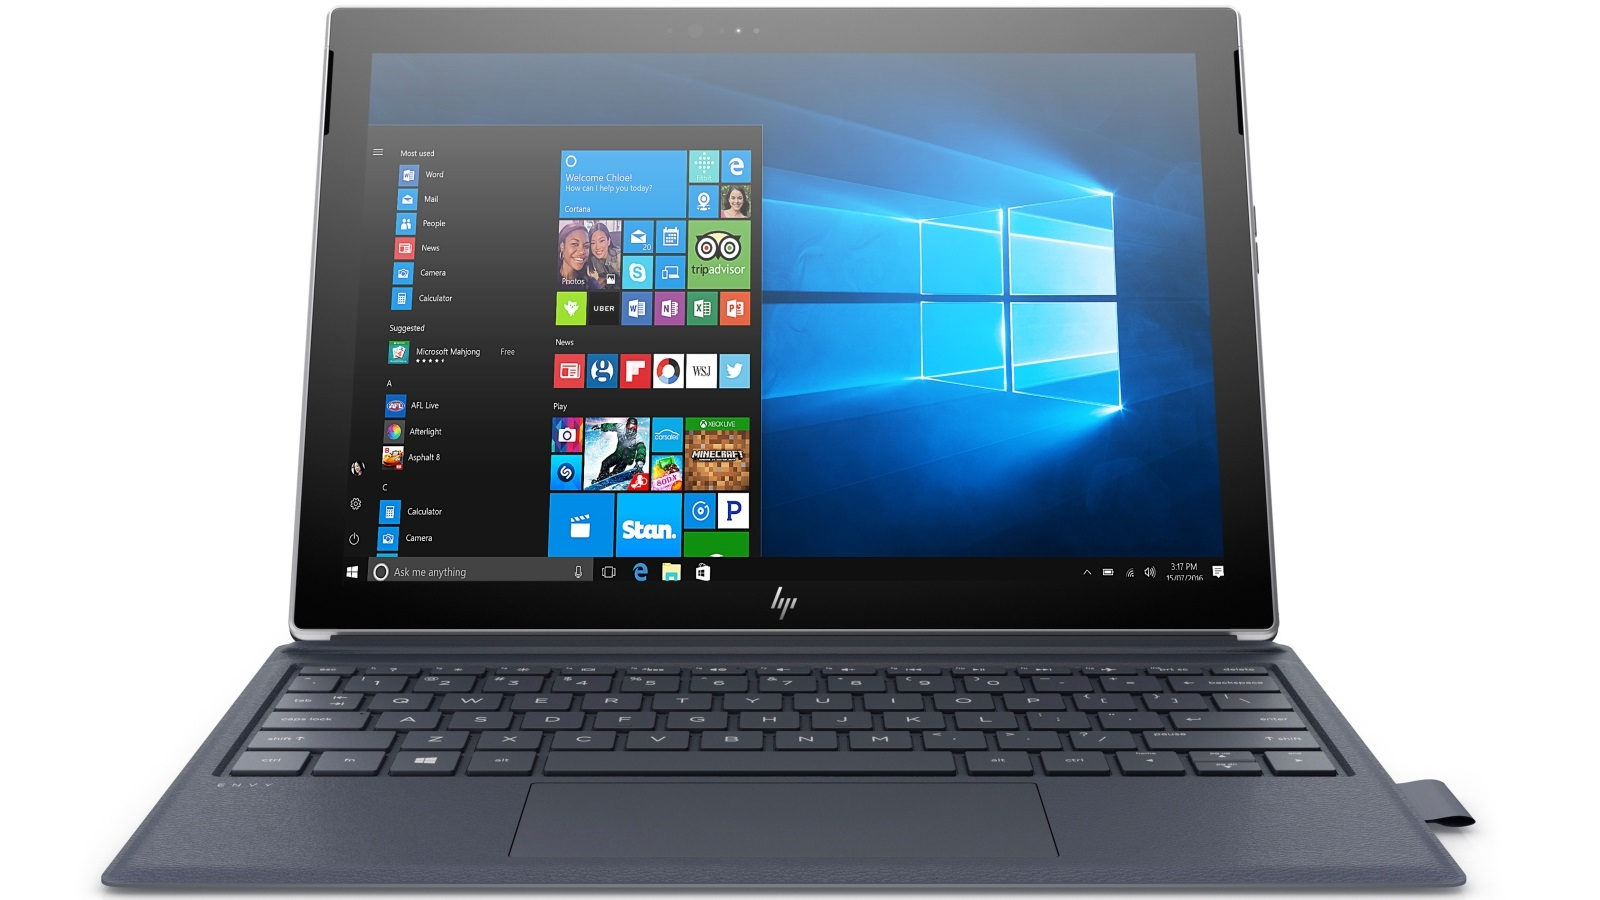 HP Envy X2 12-E001TU 2-in-1 4G Connected Laptop